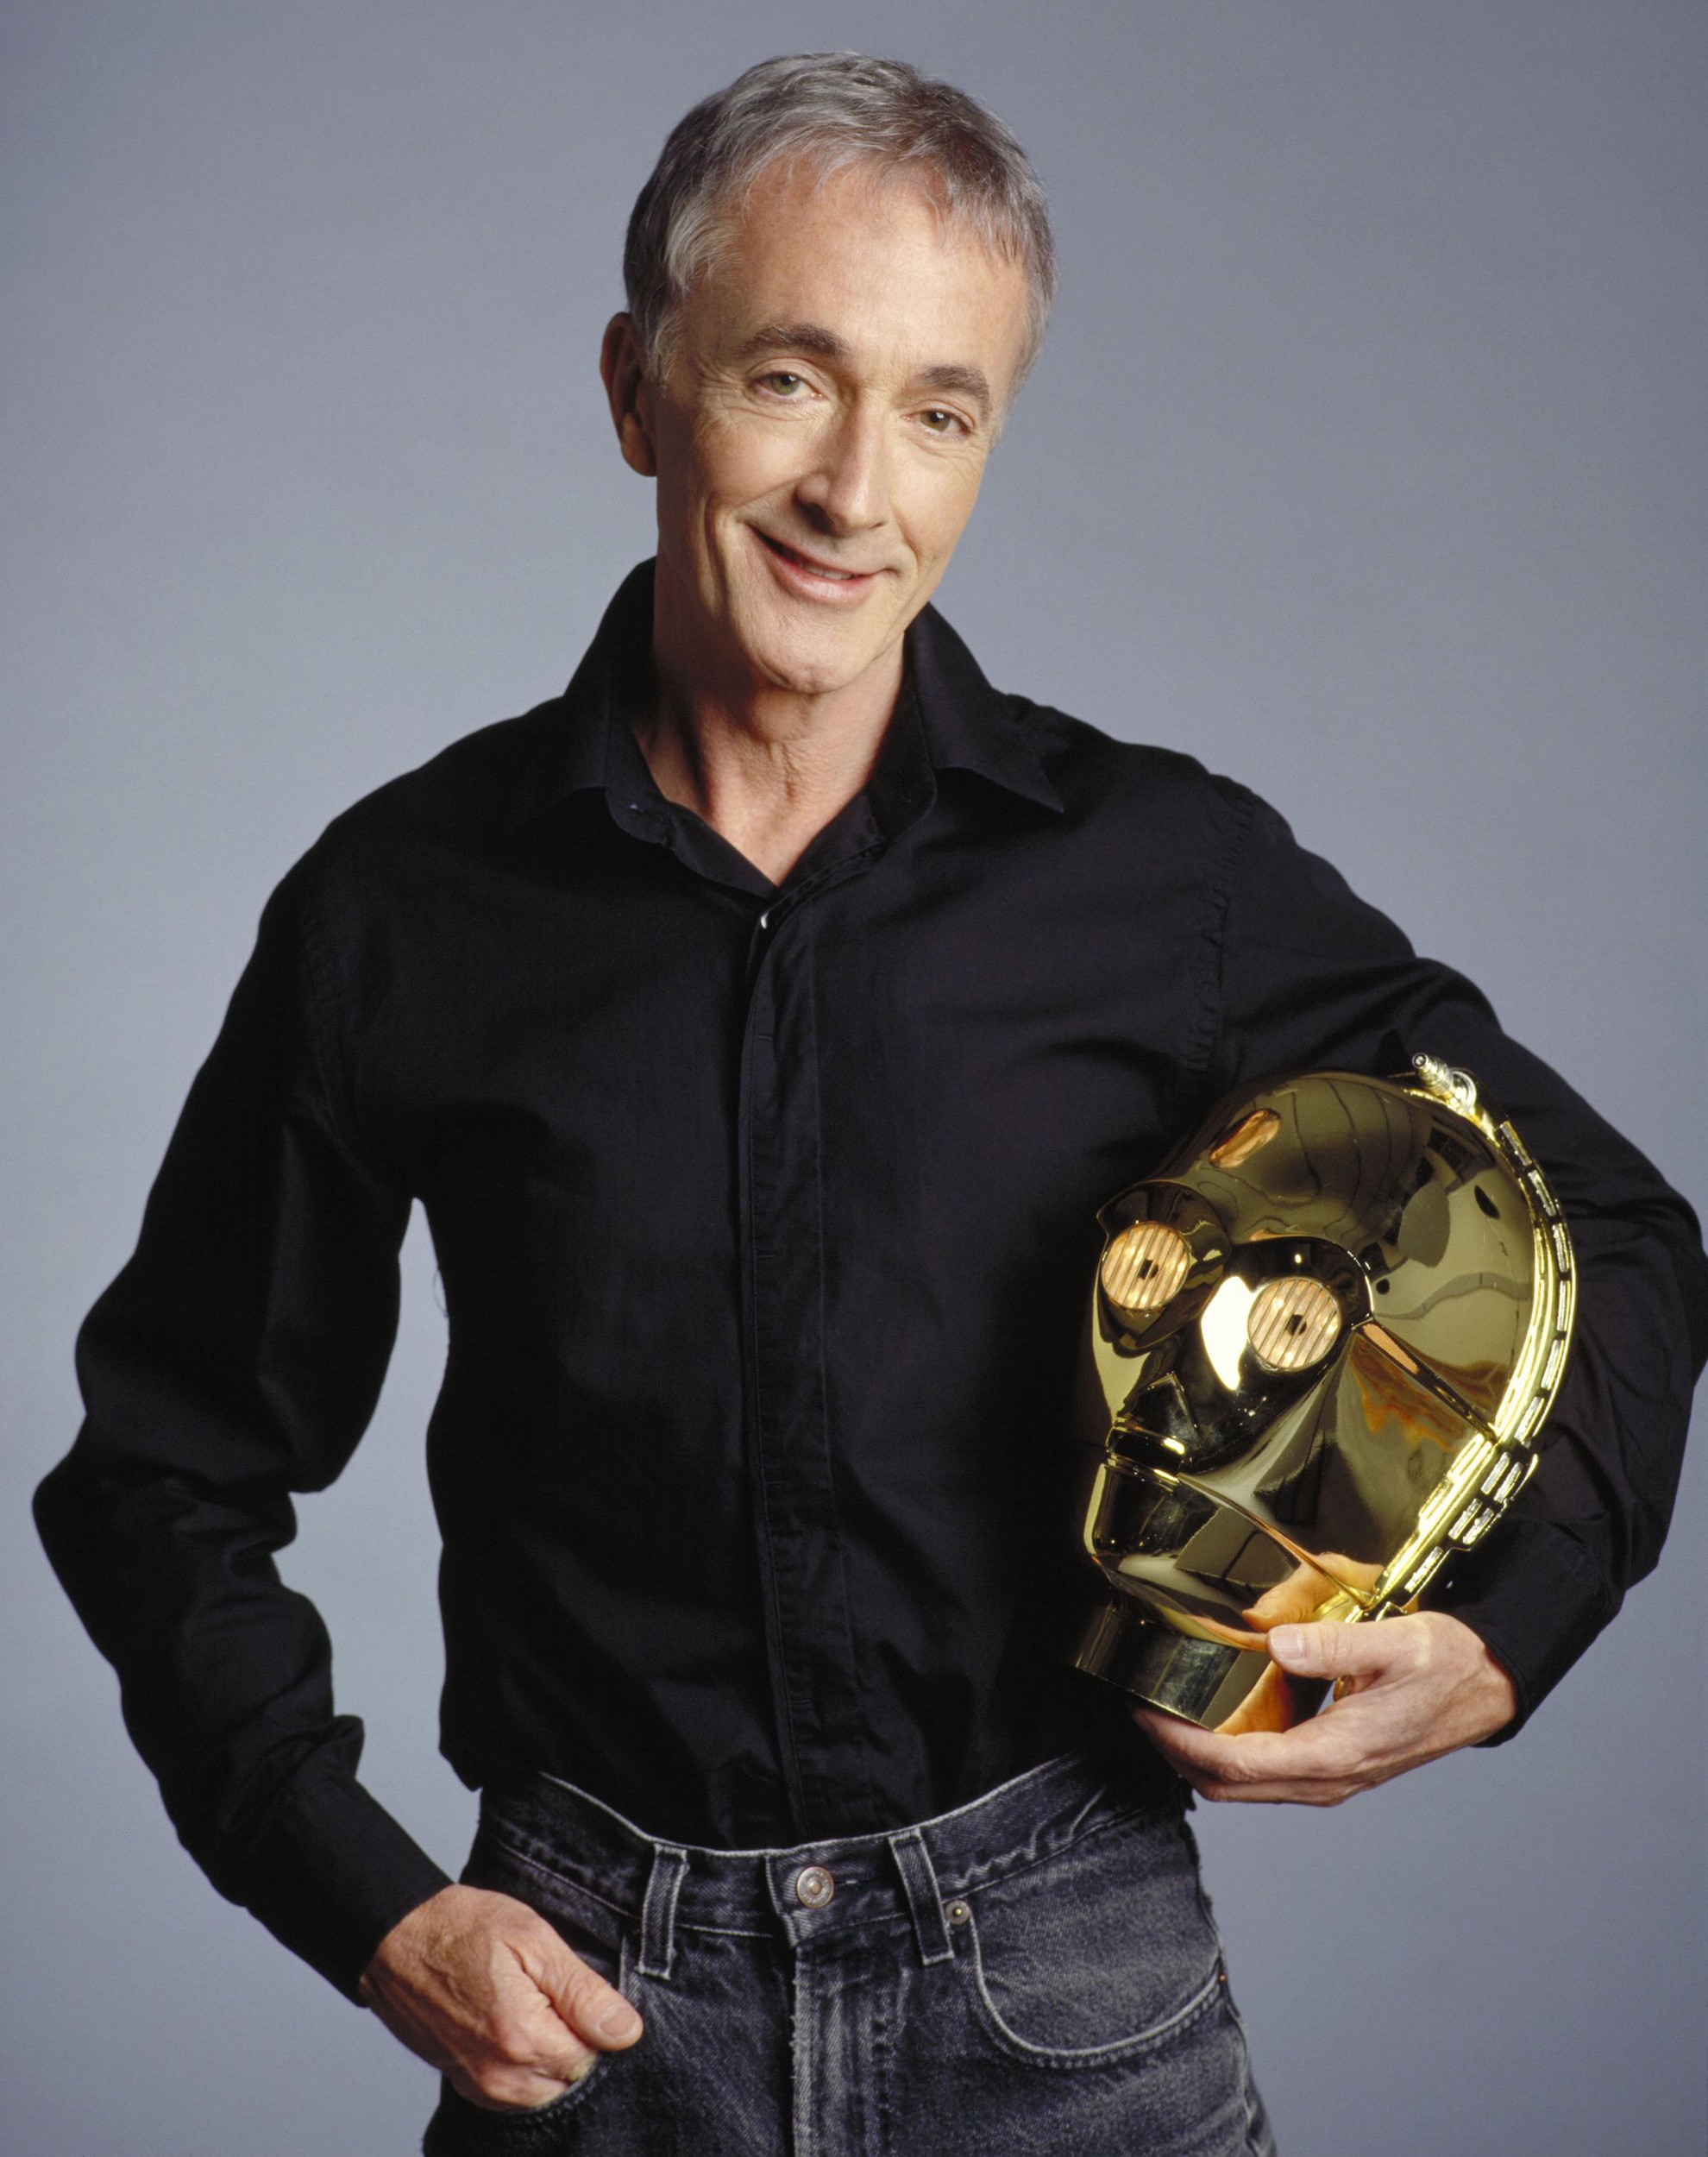 Anthony Daniels (born 1946)